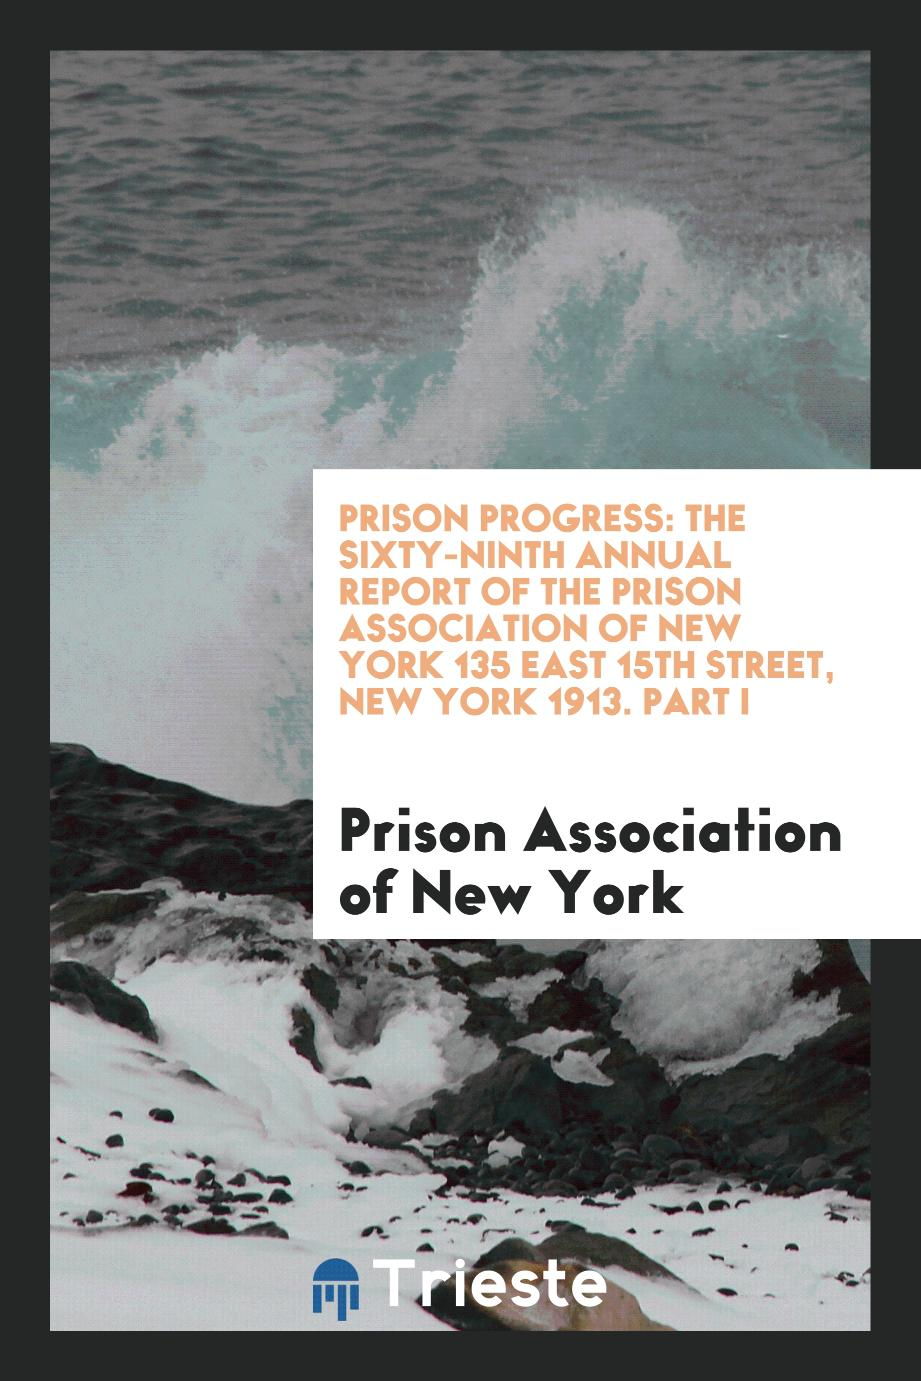 Prison Progress: The Sixty-Ninth Annual Report of the Prison Association of New York 135 East 15th Street, New York 1913. Part I